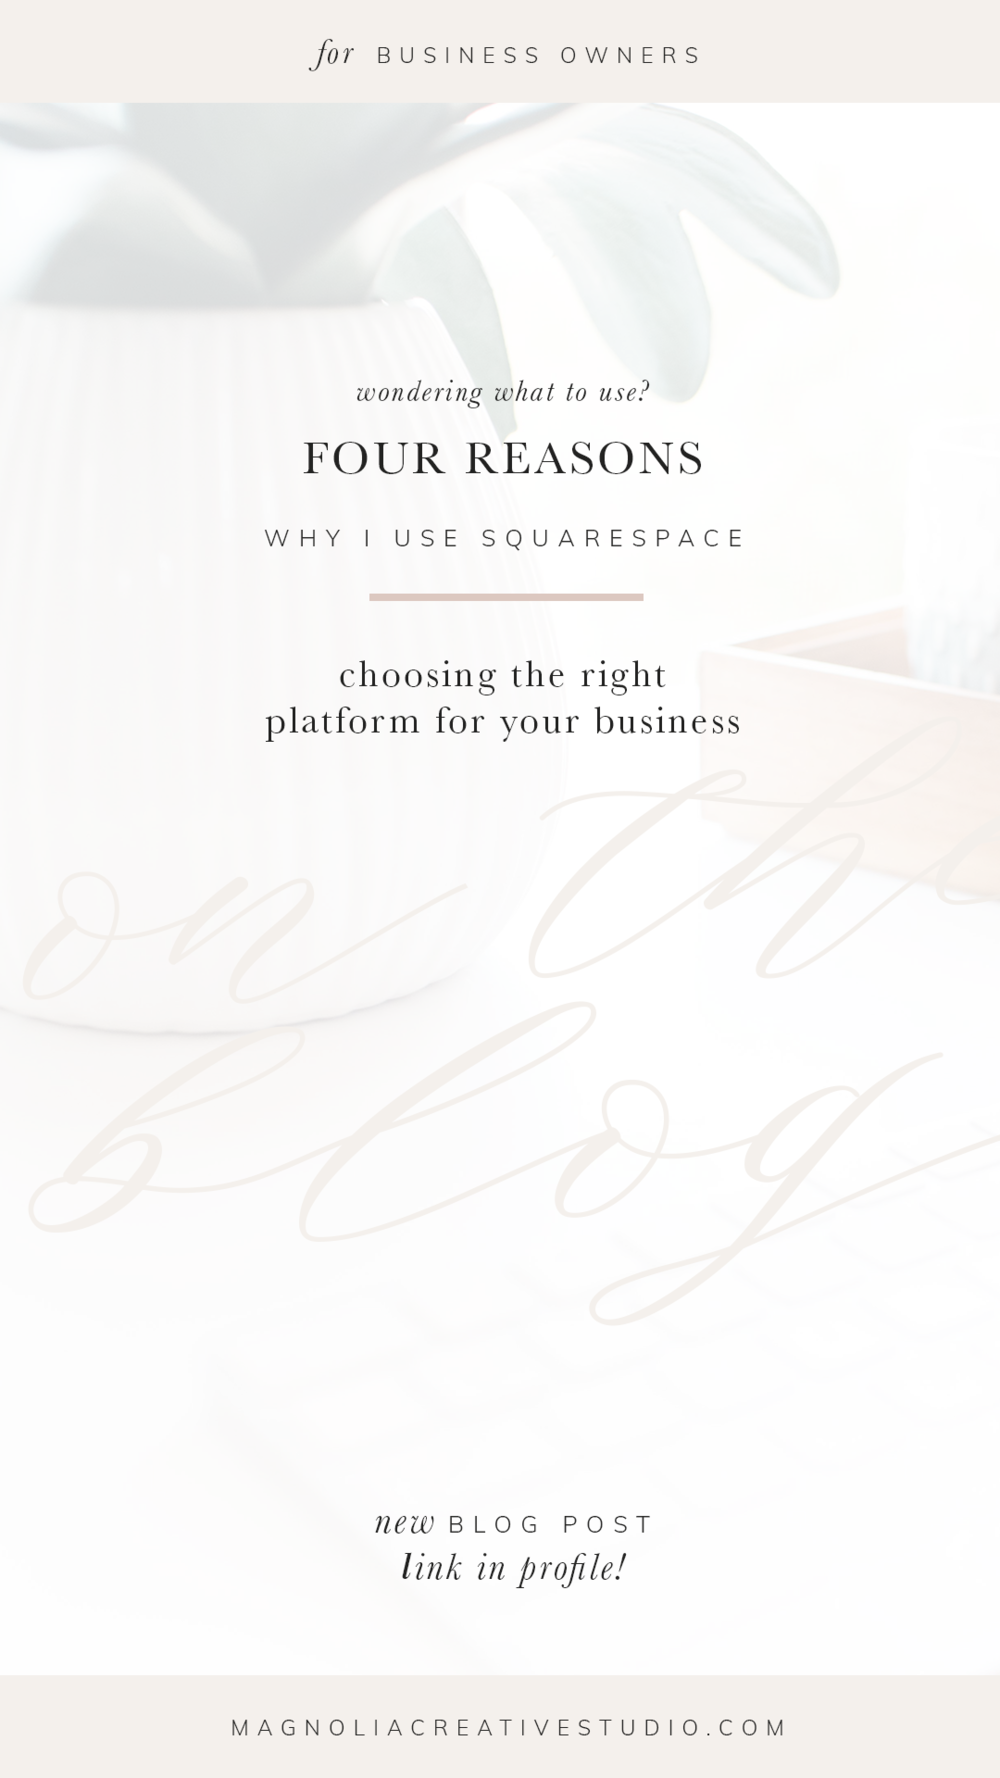 reasonsfor-squarespace.png